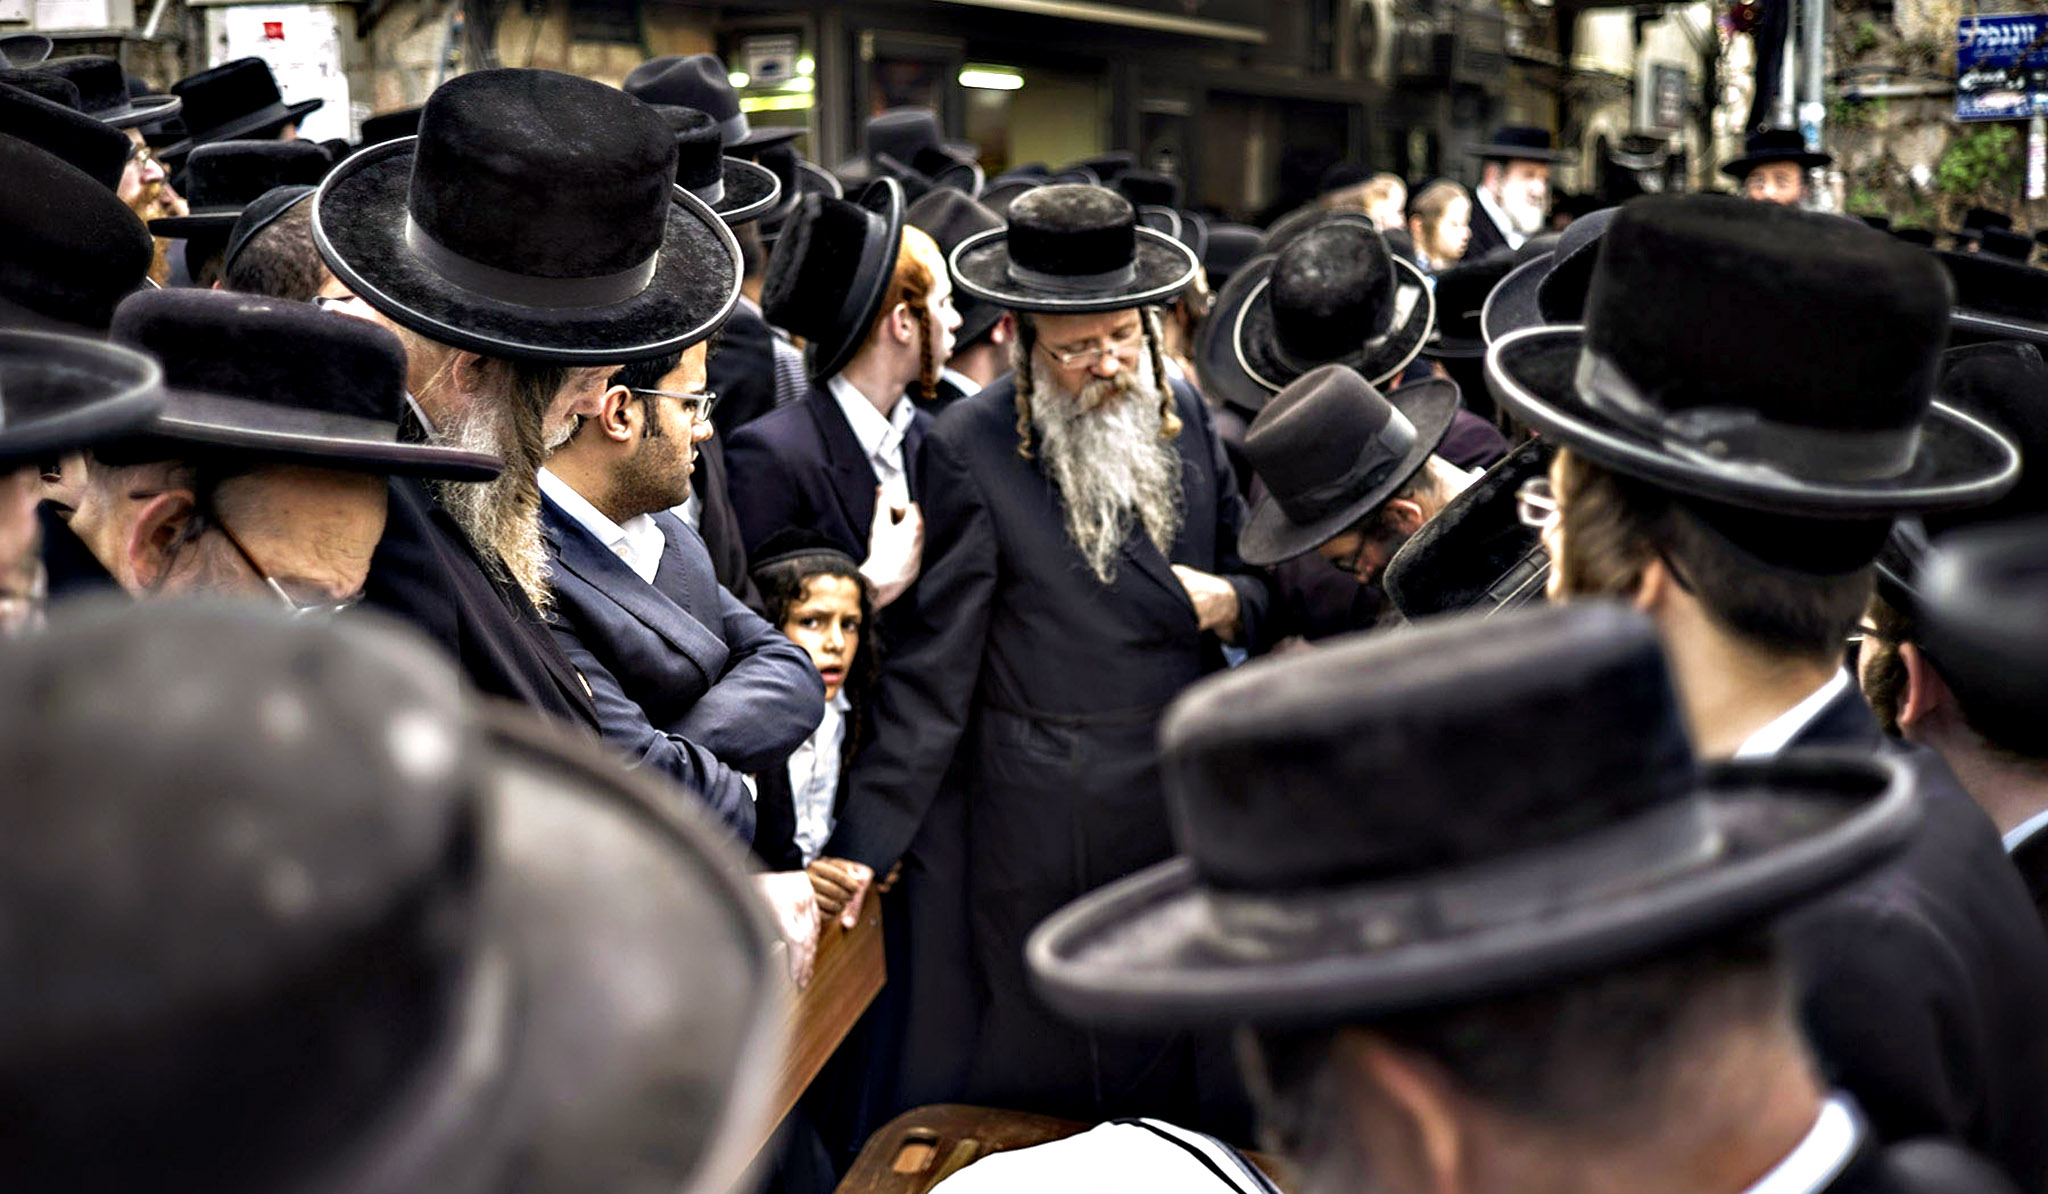 Ultra orthodox relatives and friends attend the funeral of Isheayahu Krishevsky on Tuesday in Jerusalem, Israel. Krishevsky was stabbed to death by a Palestinian man earlier today